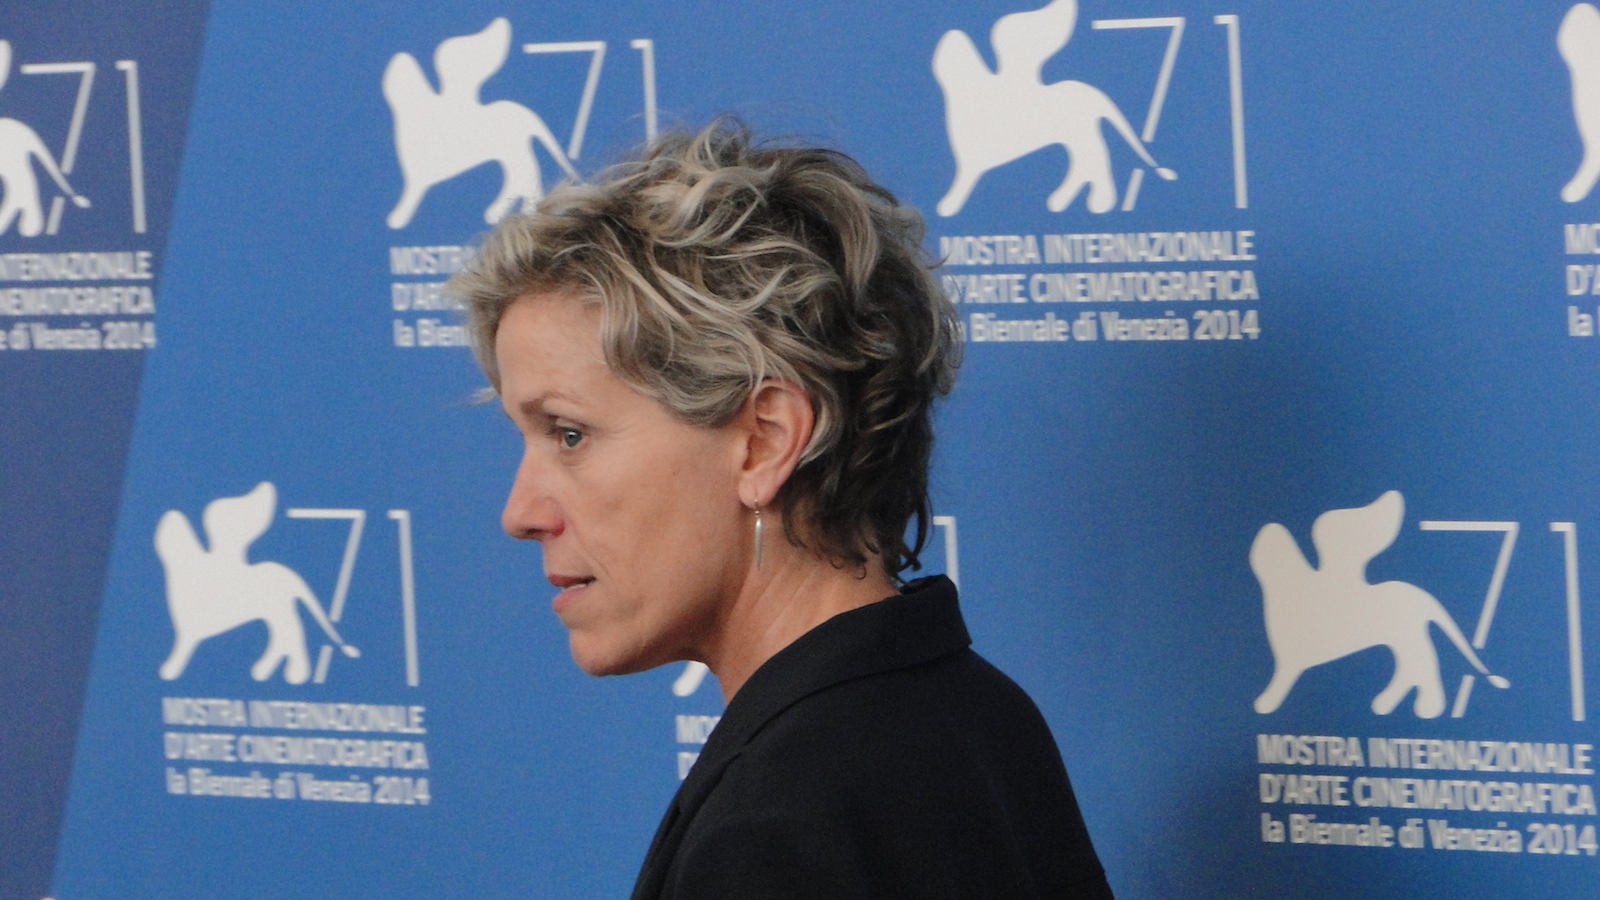 Olive Kitteridge: Frances McDormand al photocall di Venezia 2014